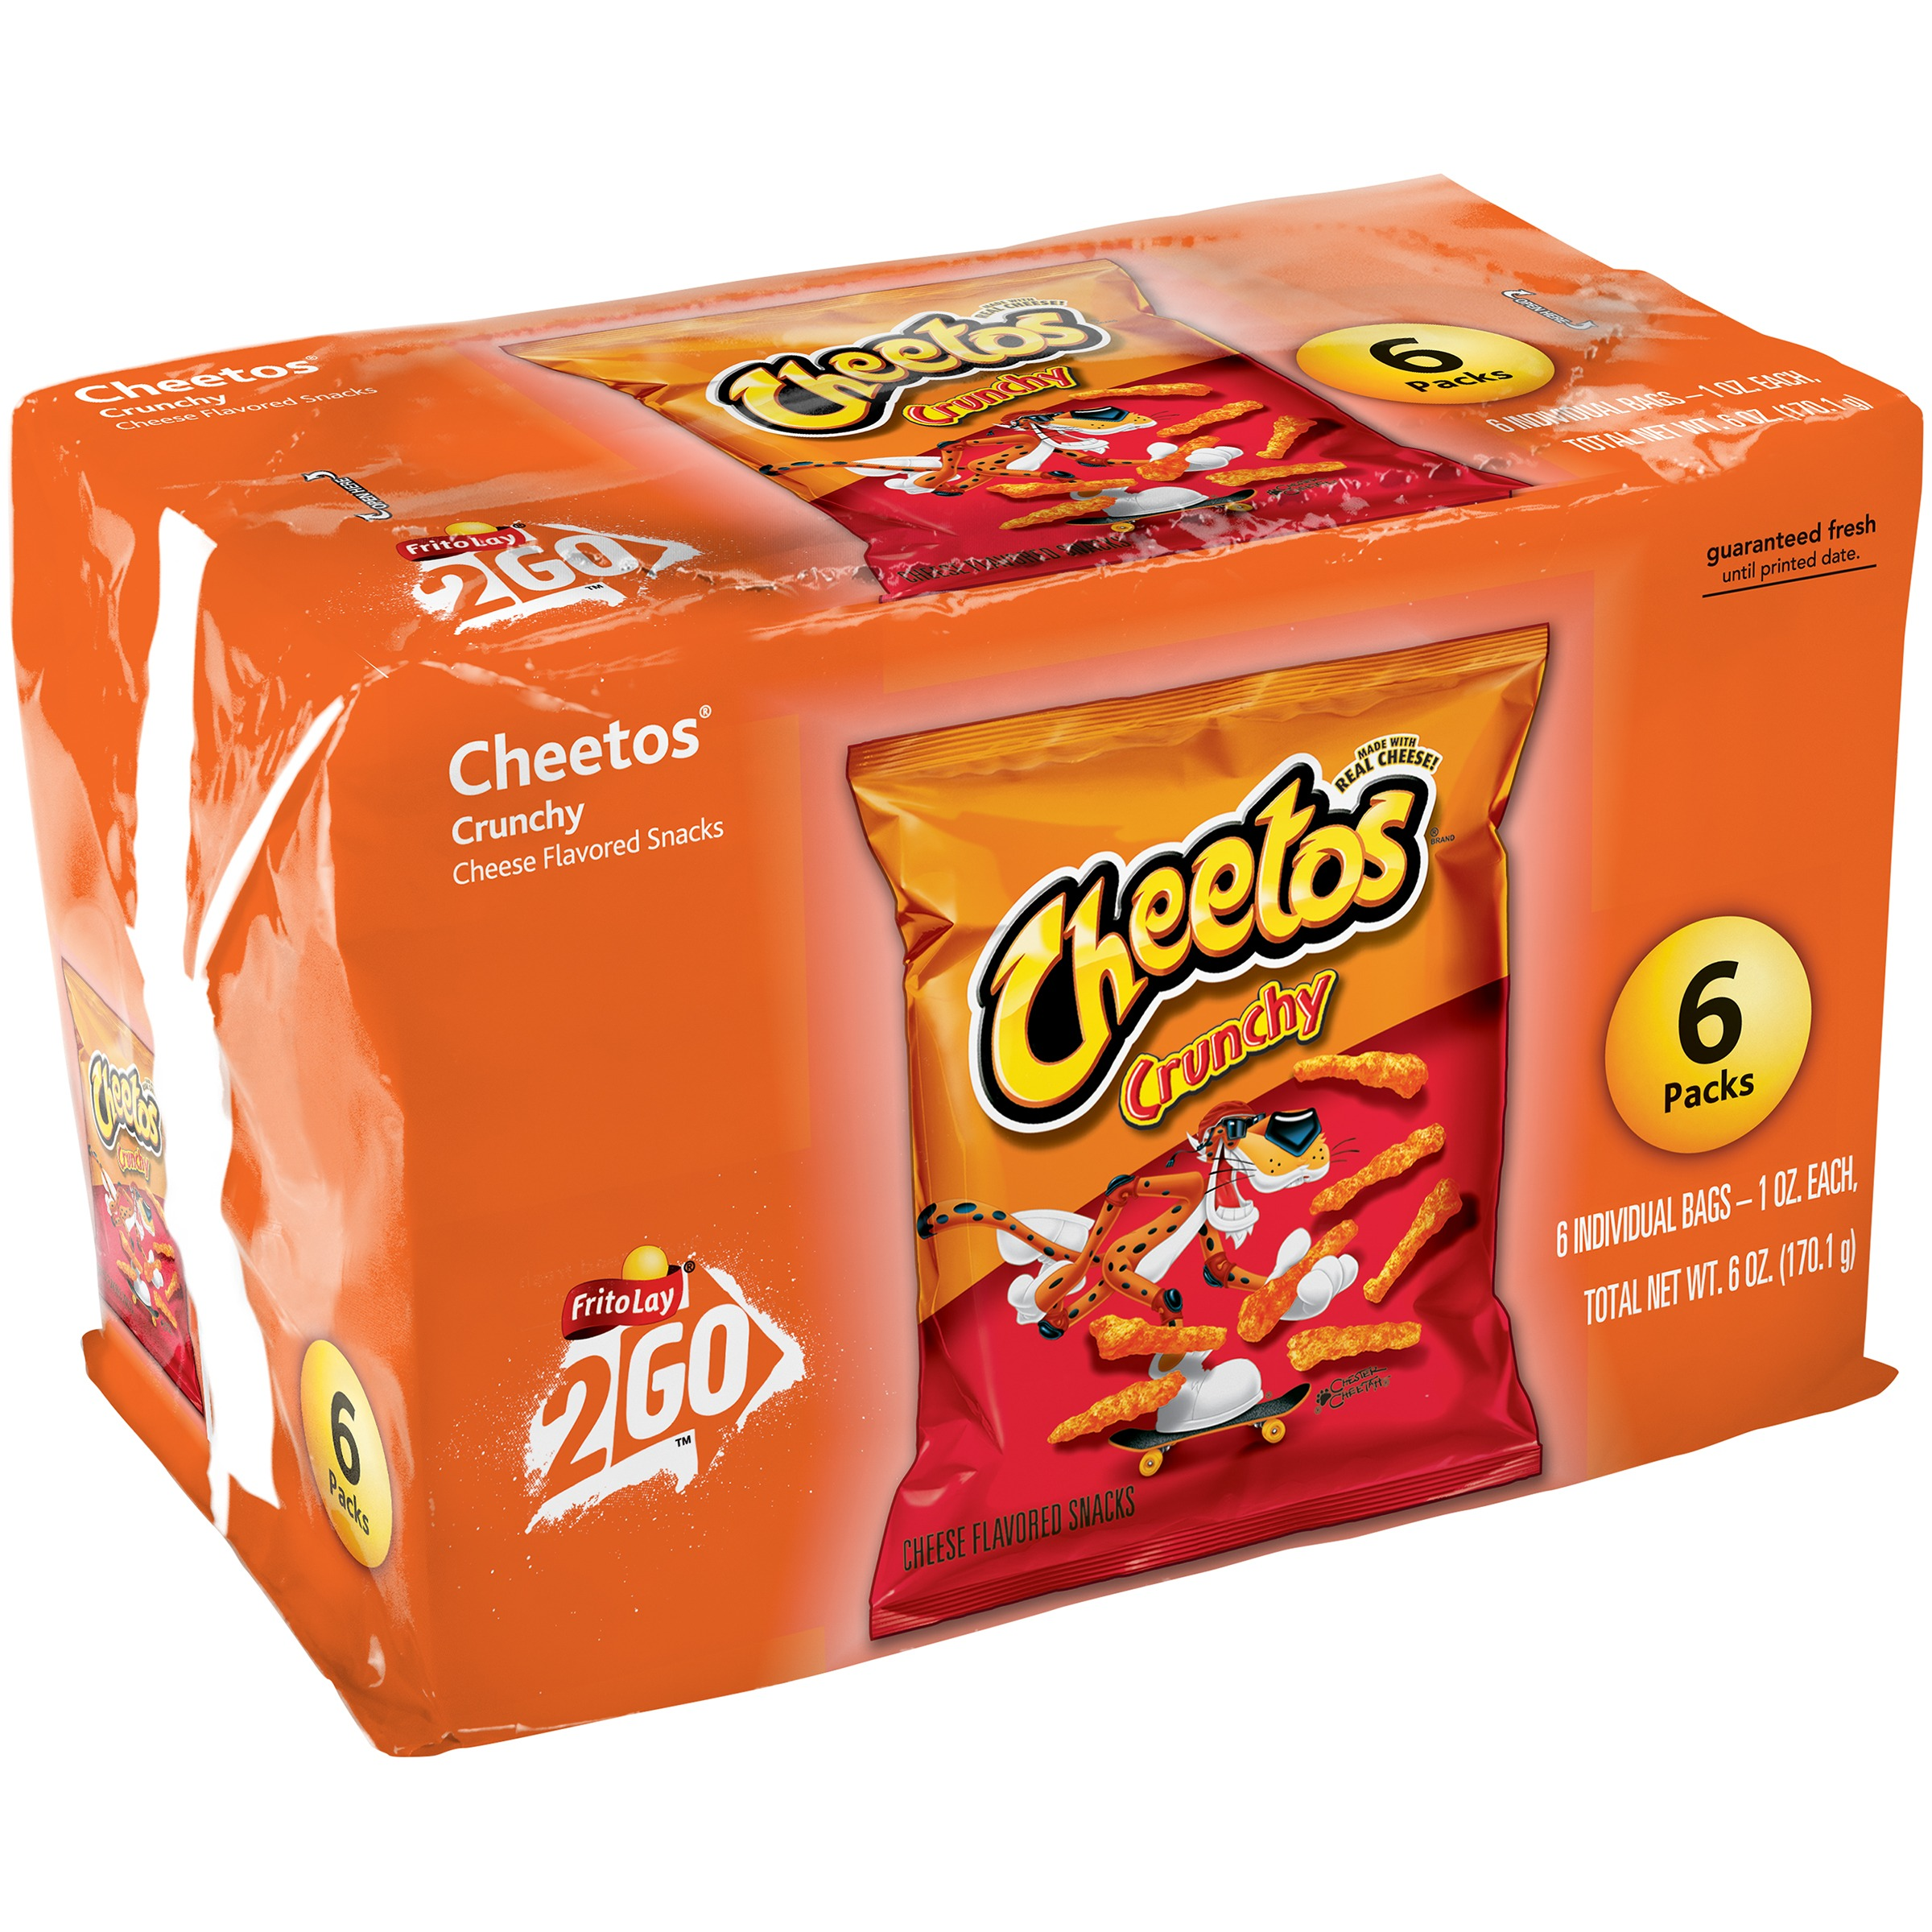 Cheetos Crunchy Cheese Flavored Snacks 6-1 oz. Bags